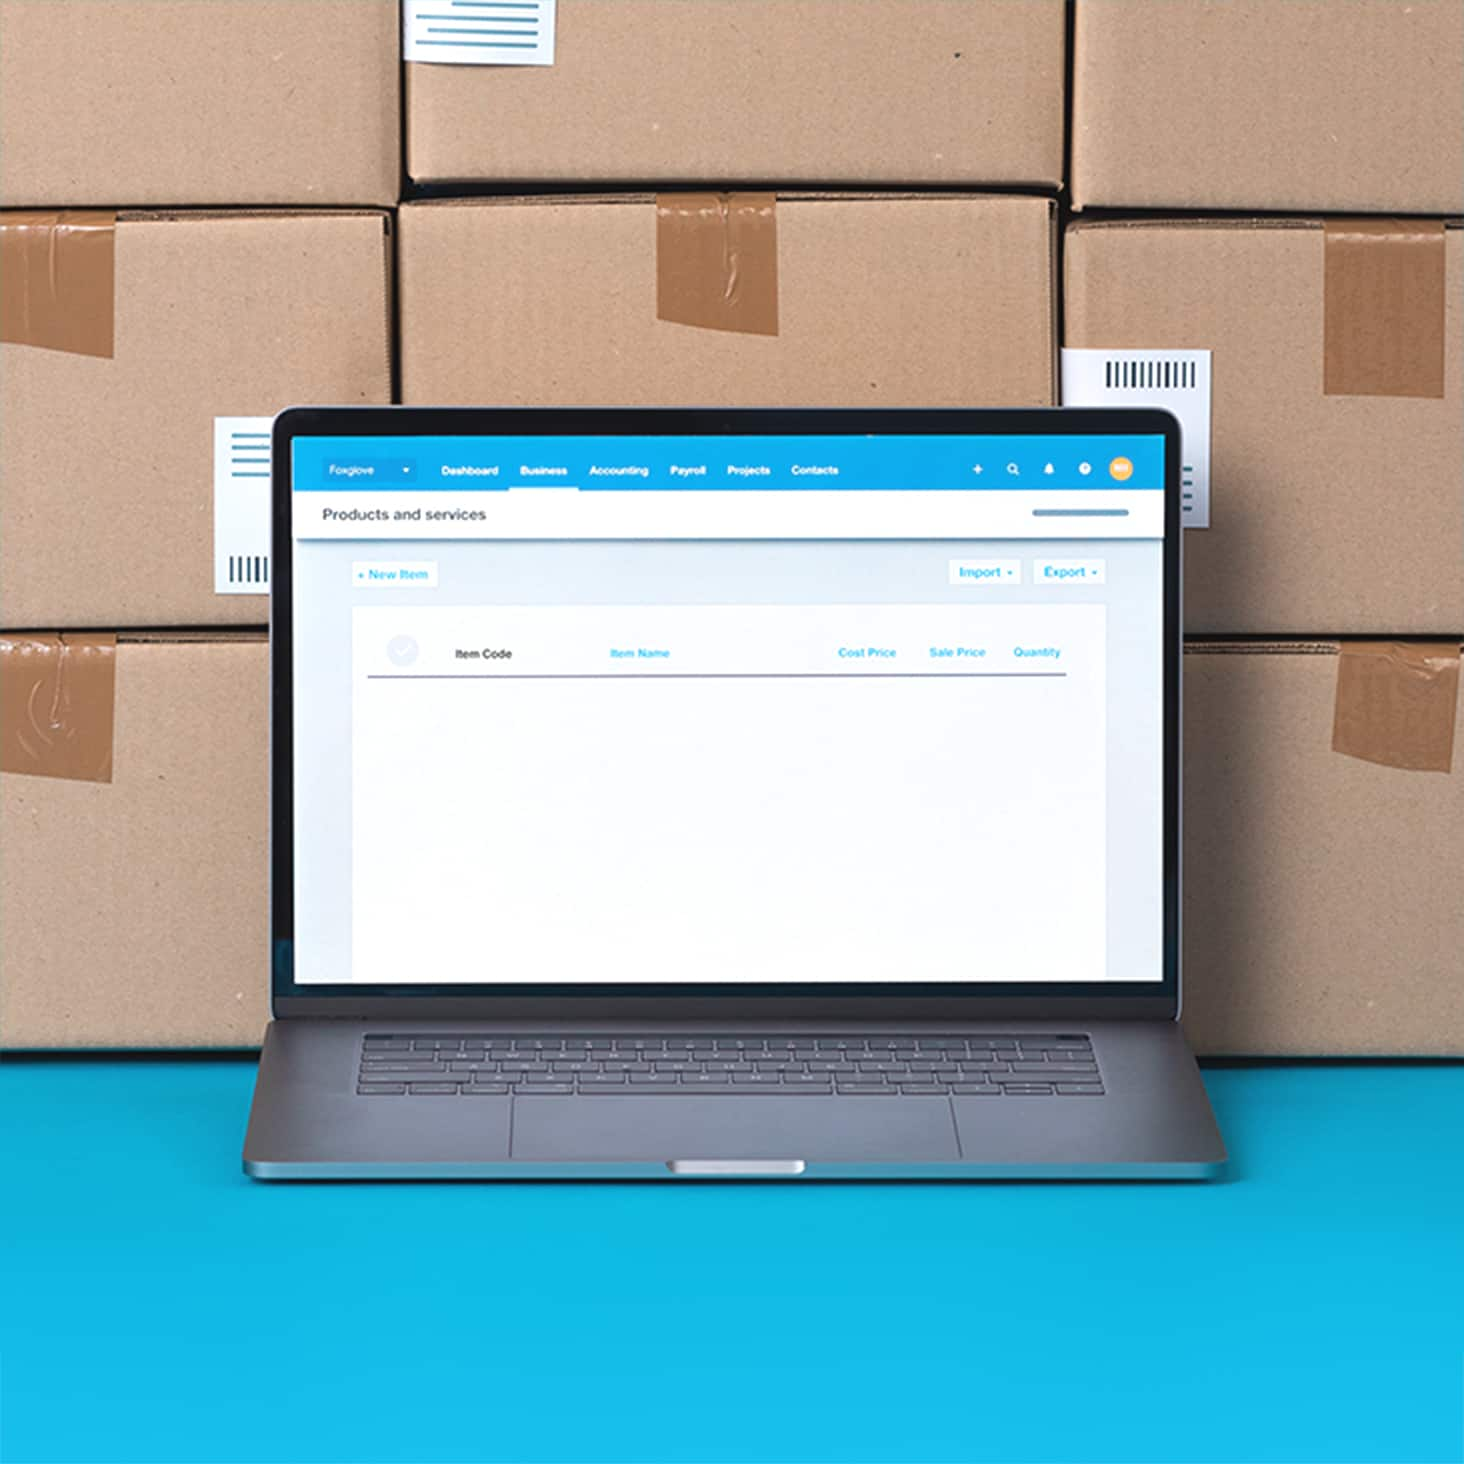 Unopened boxes containing new stock are stacked near a laptop that displays a list of inventory items in Xero.